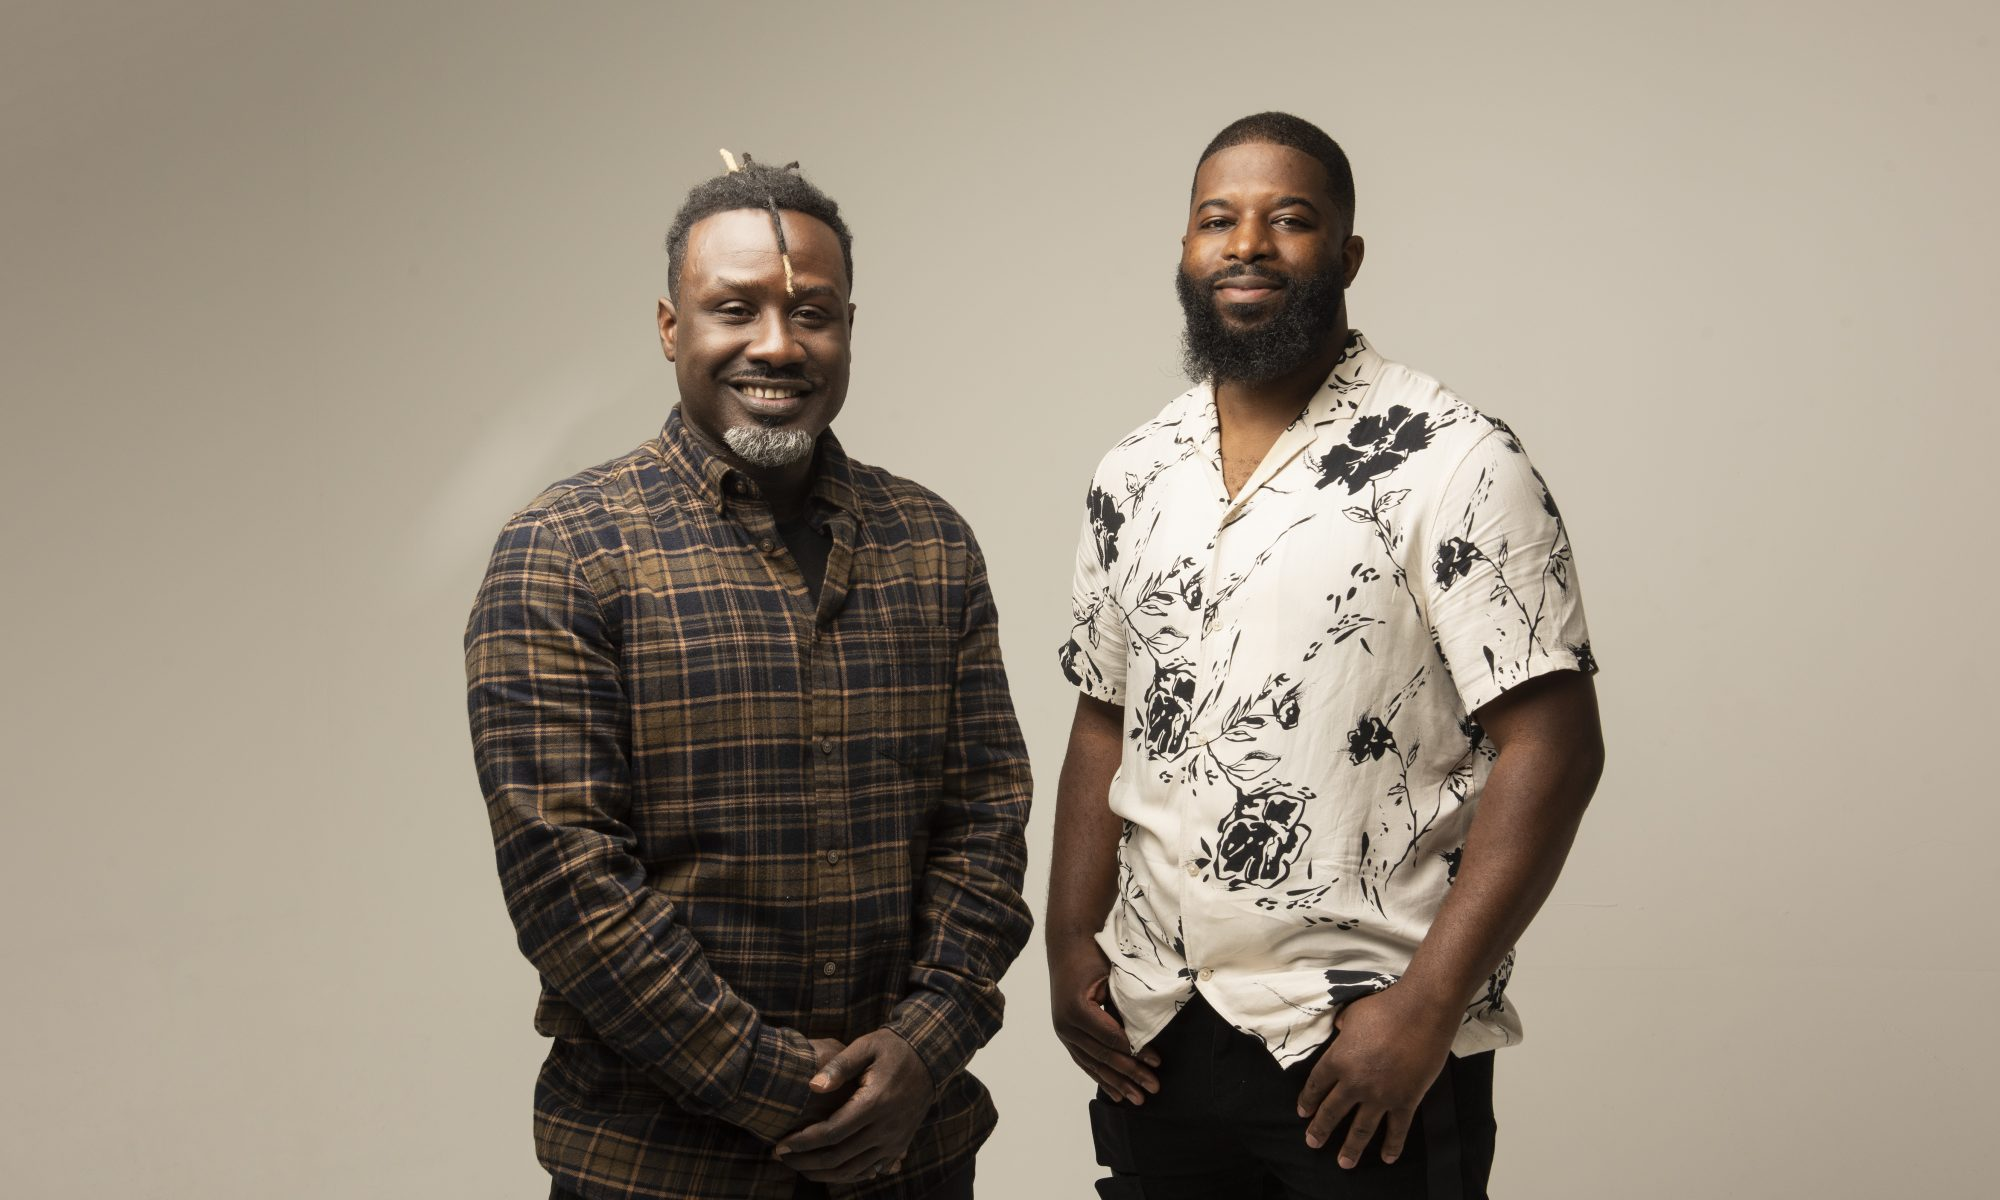 Image shows Michael Stuart-Daley and Calvin Mlilo of Silverspace